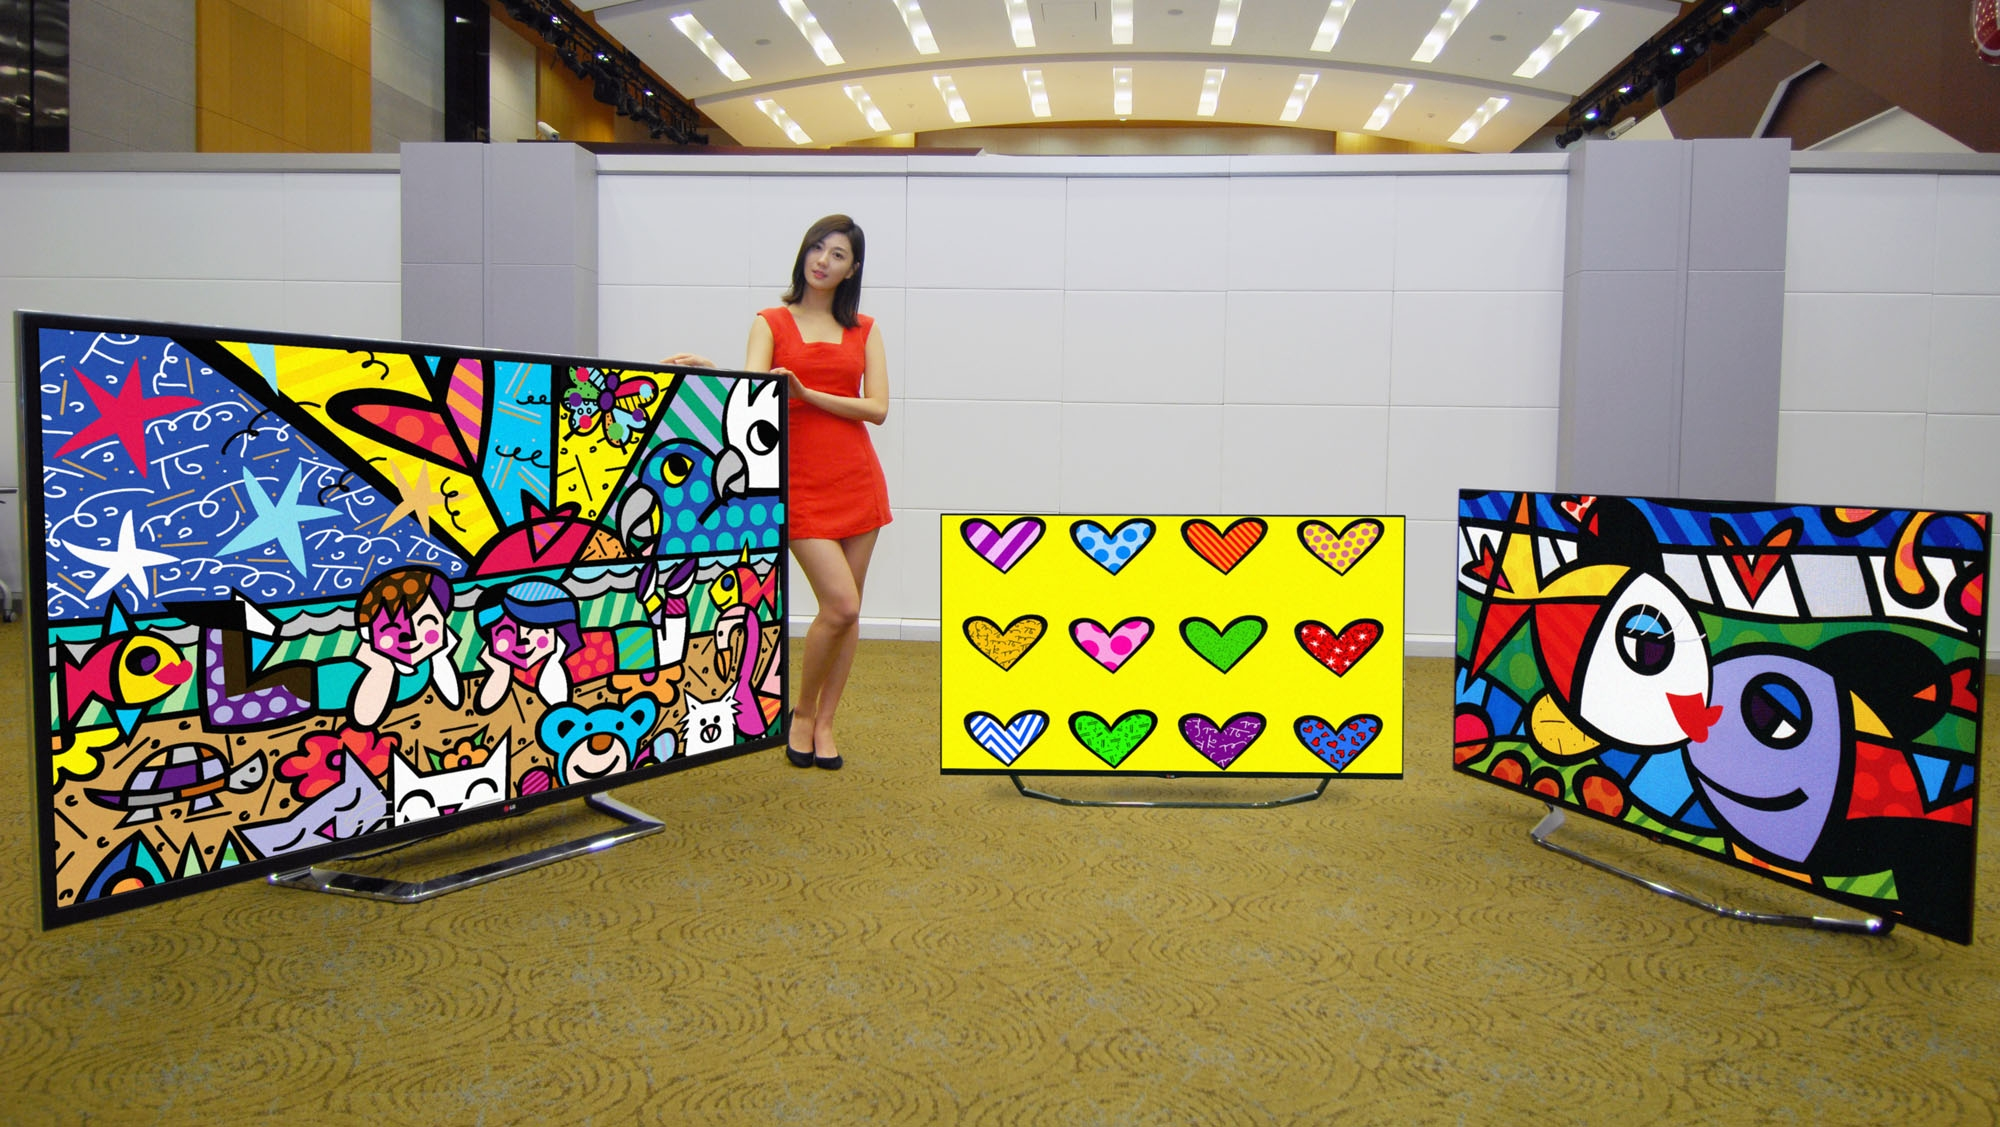 A model is presenting LG UHD TVs (84-inch, 55- and 65-inch screen models)